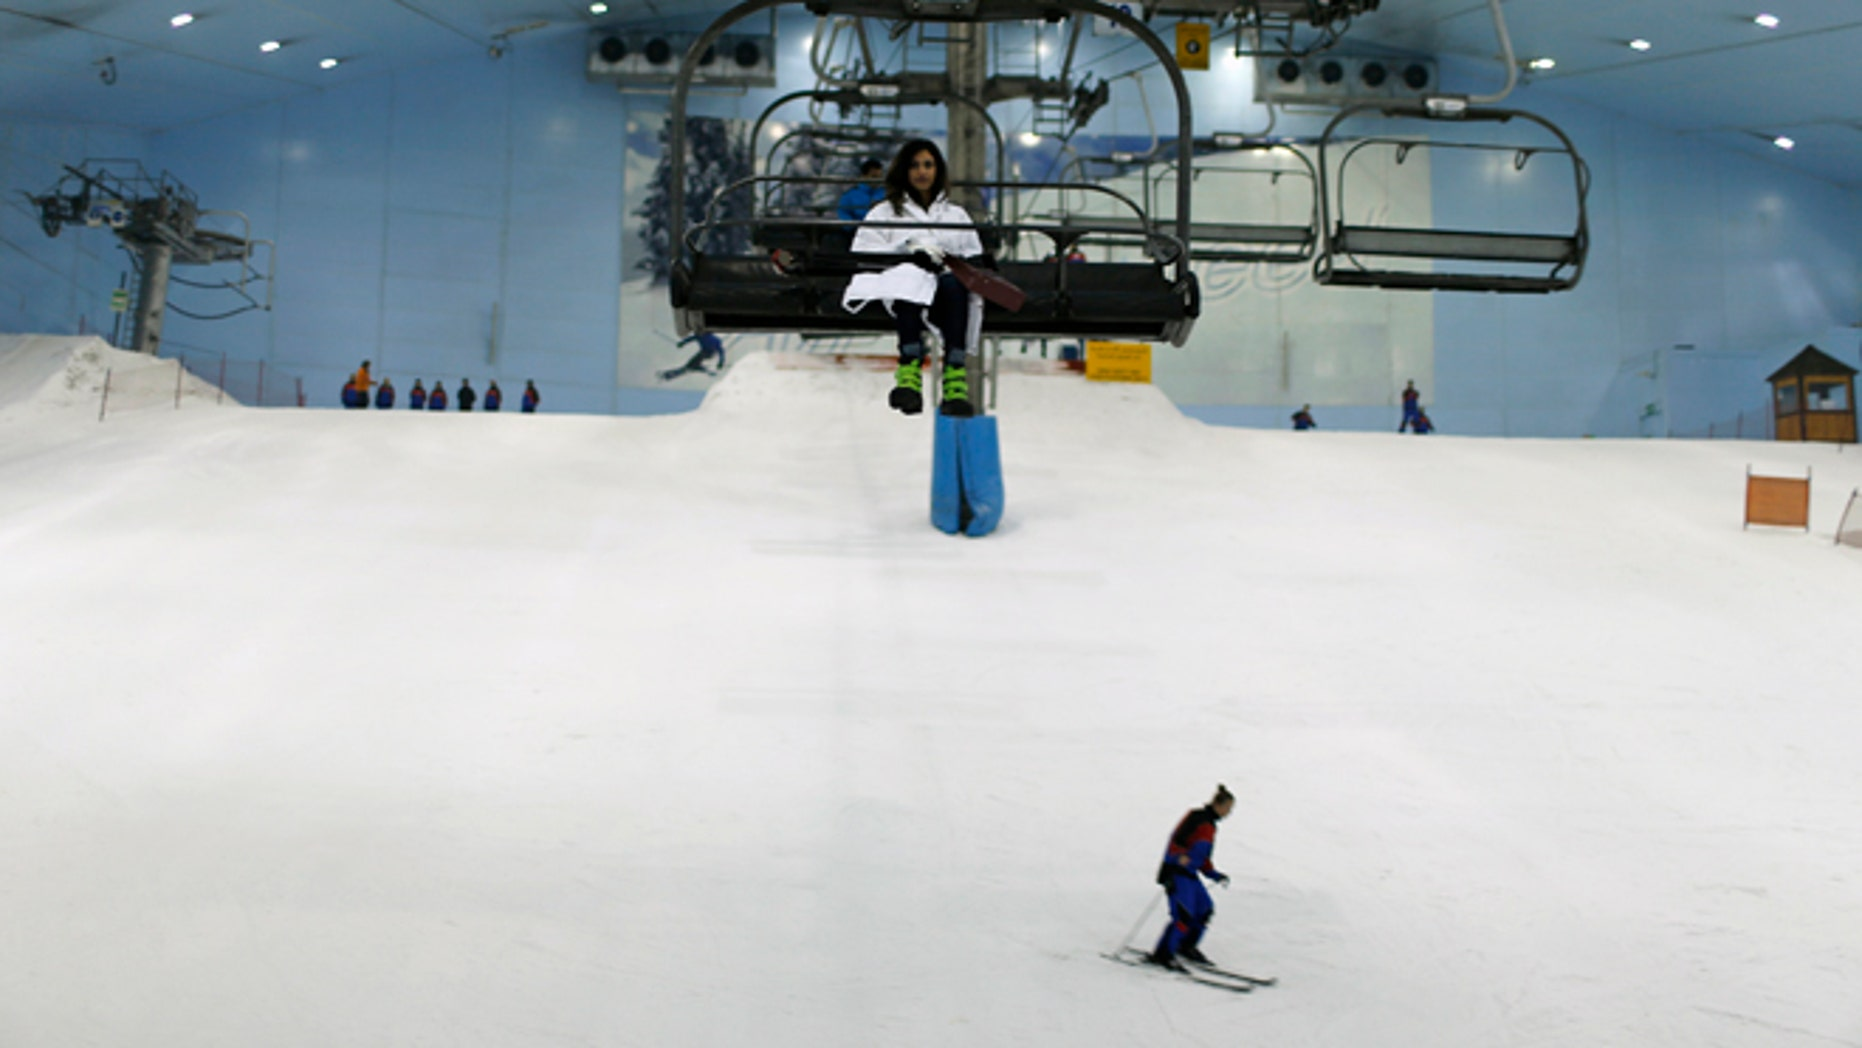 Visitors ski and ride in chairlifts in Dubai's indoor mountain-themed ski park, at Emirates mall in Dubai September 25, 2013.